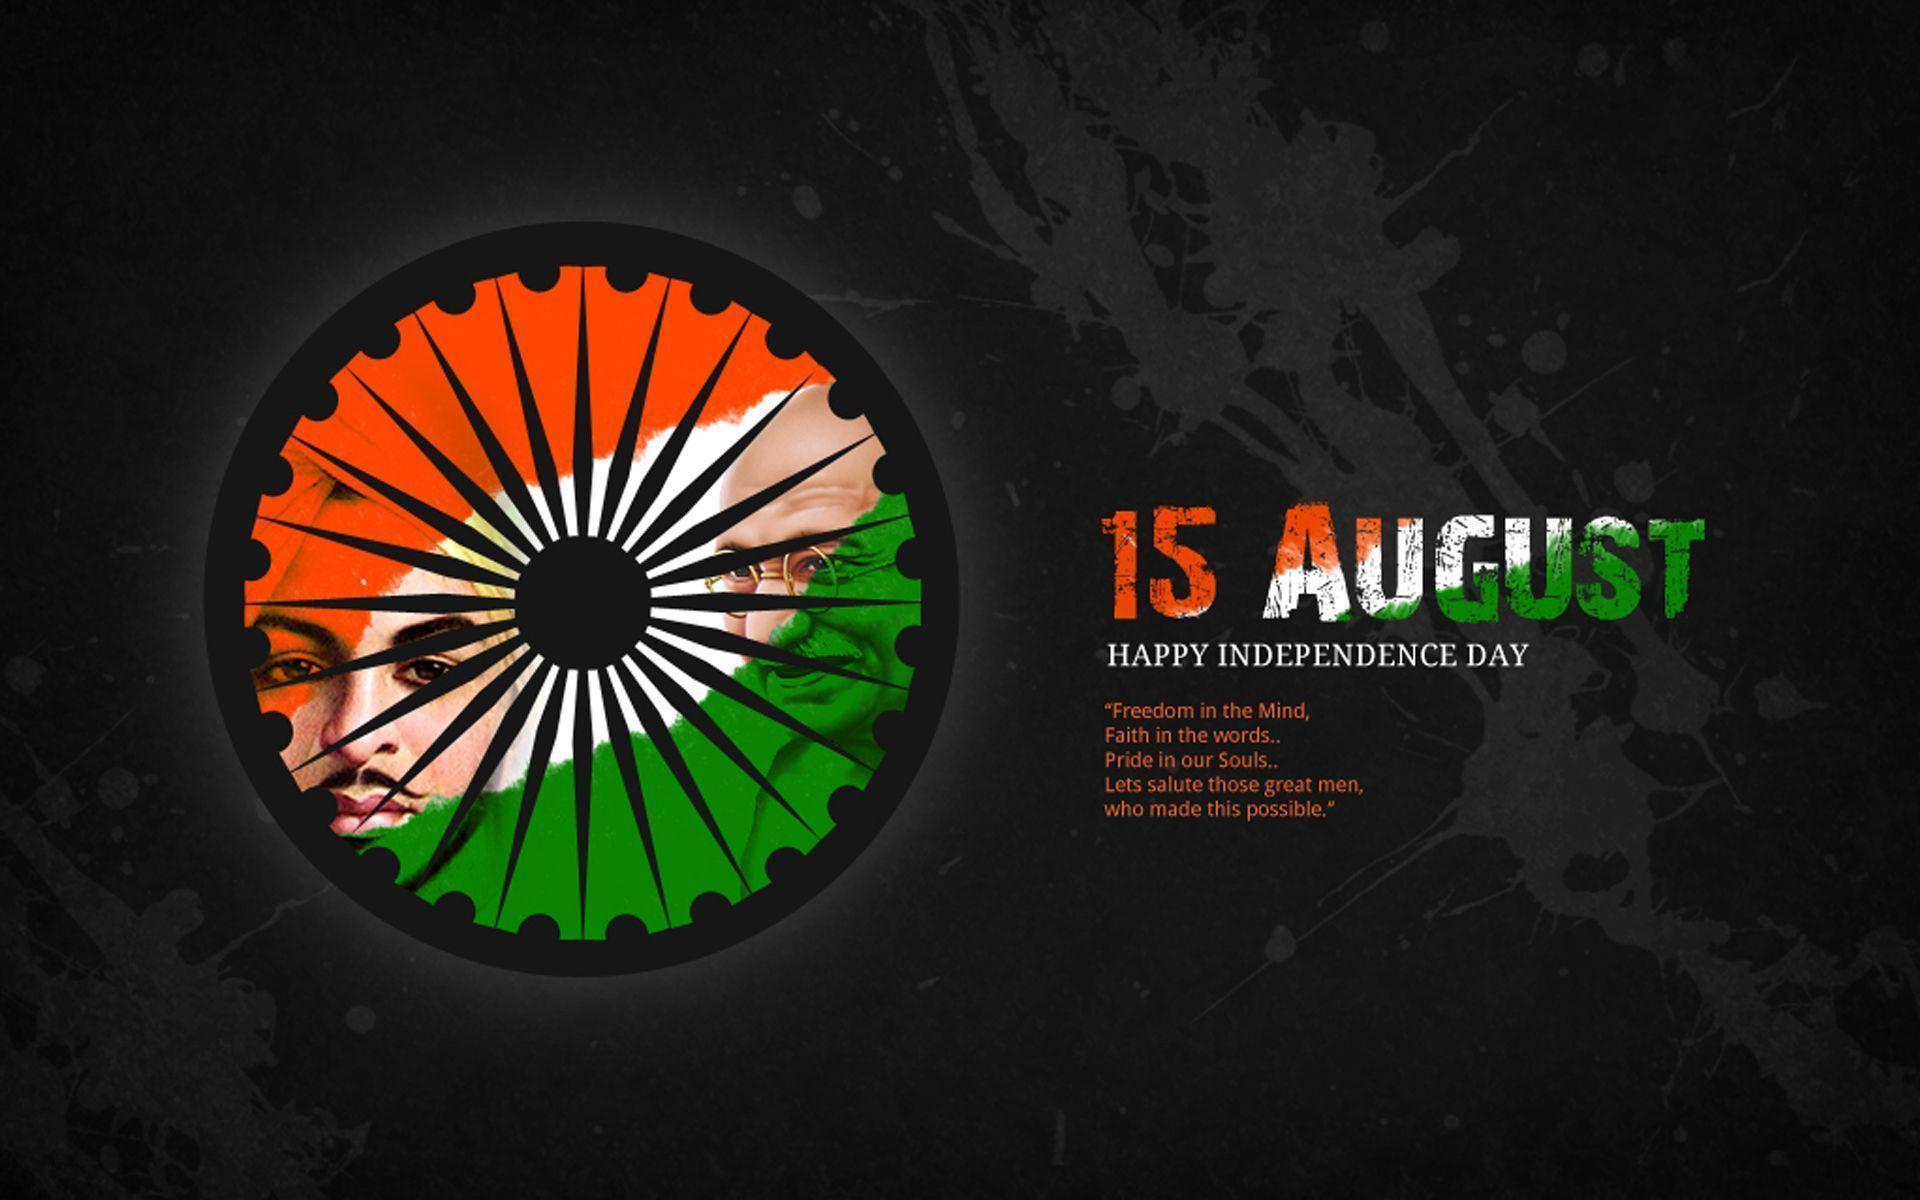 15 august independence day essay Independence day of india 2018, find out short speech, quotes, celebration, slogans, history, importance and significance of independence day independence day is celebrated nationwide on 15th august every year to commemorate the independence from the british empire and slavery.